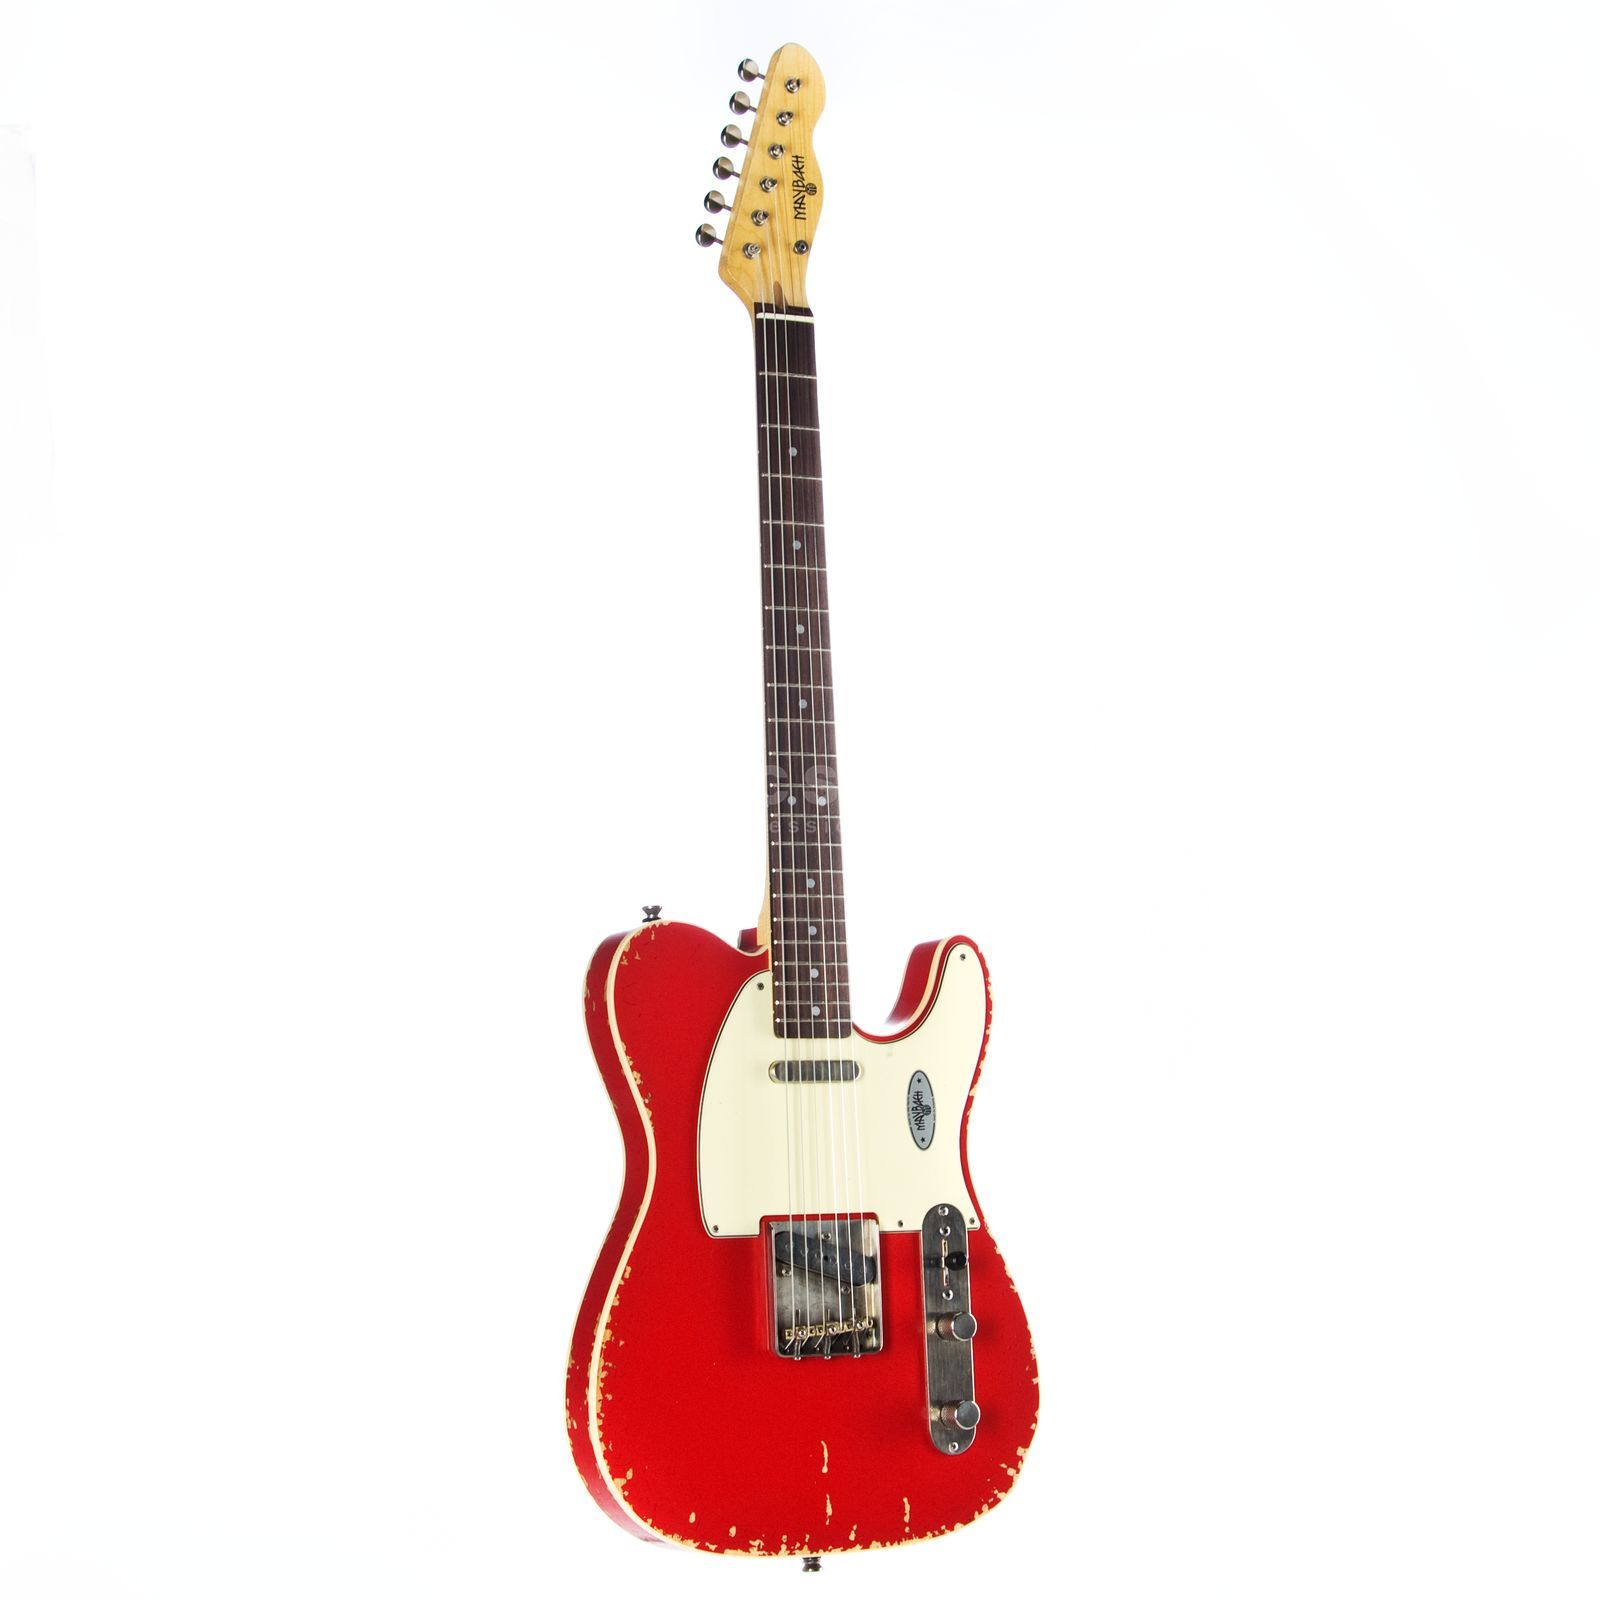 Maybach Teleman T61 Red Rooster Aged Custom Shop Product Image